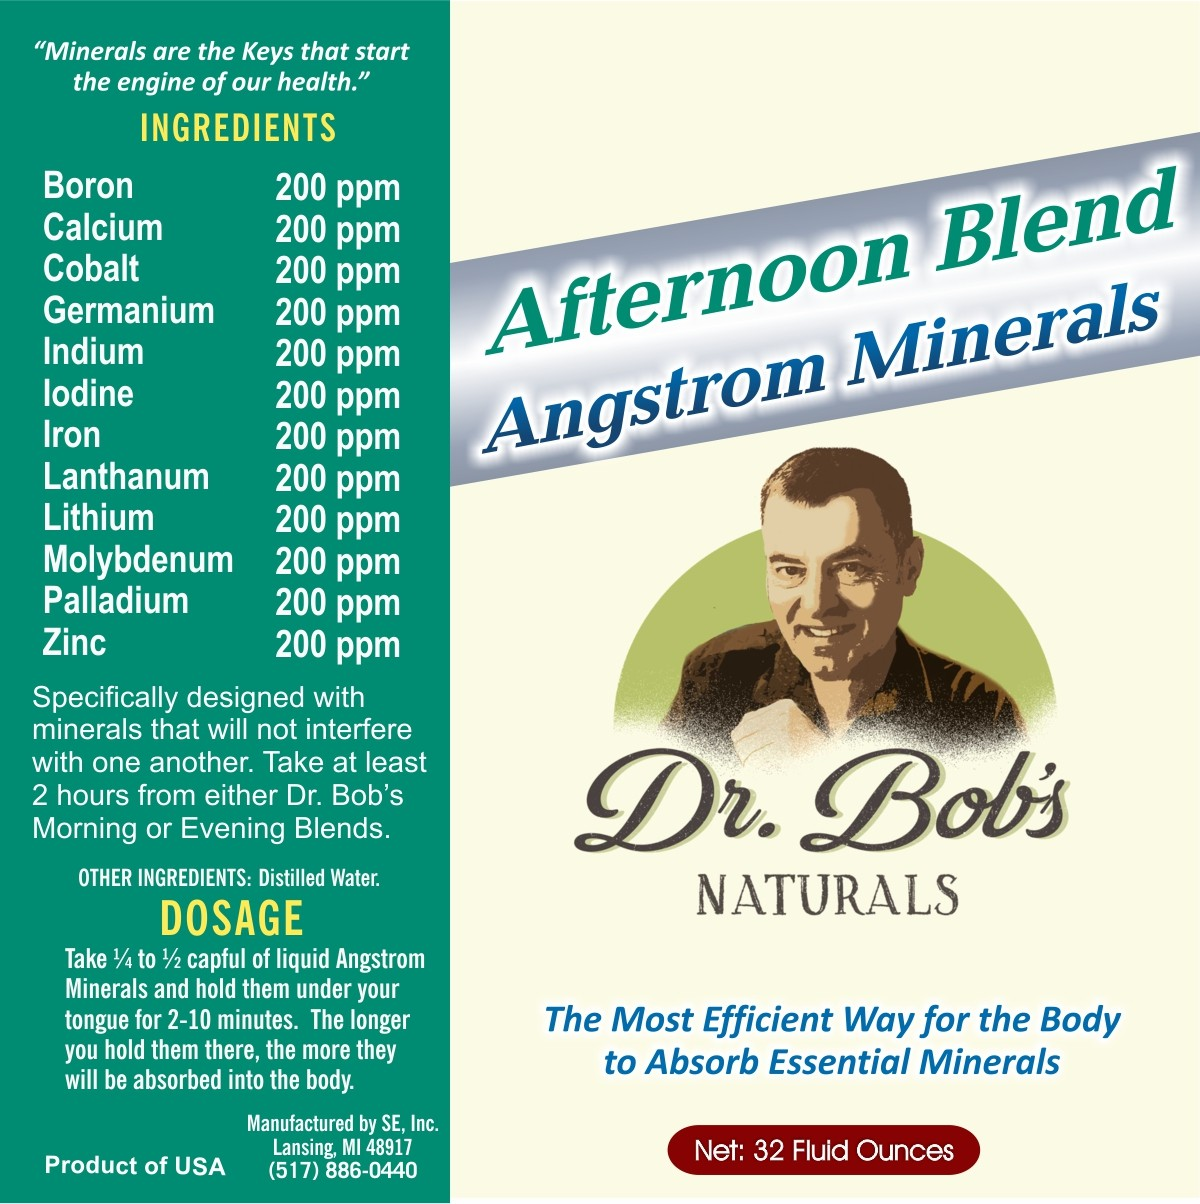 Angstrom Minerals - Afternoon Blend